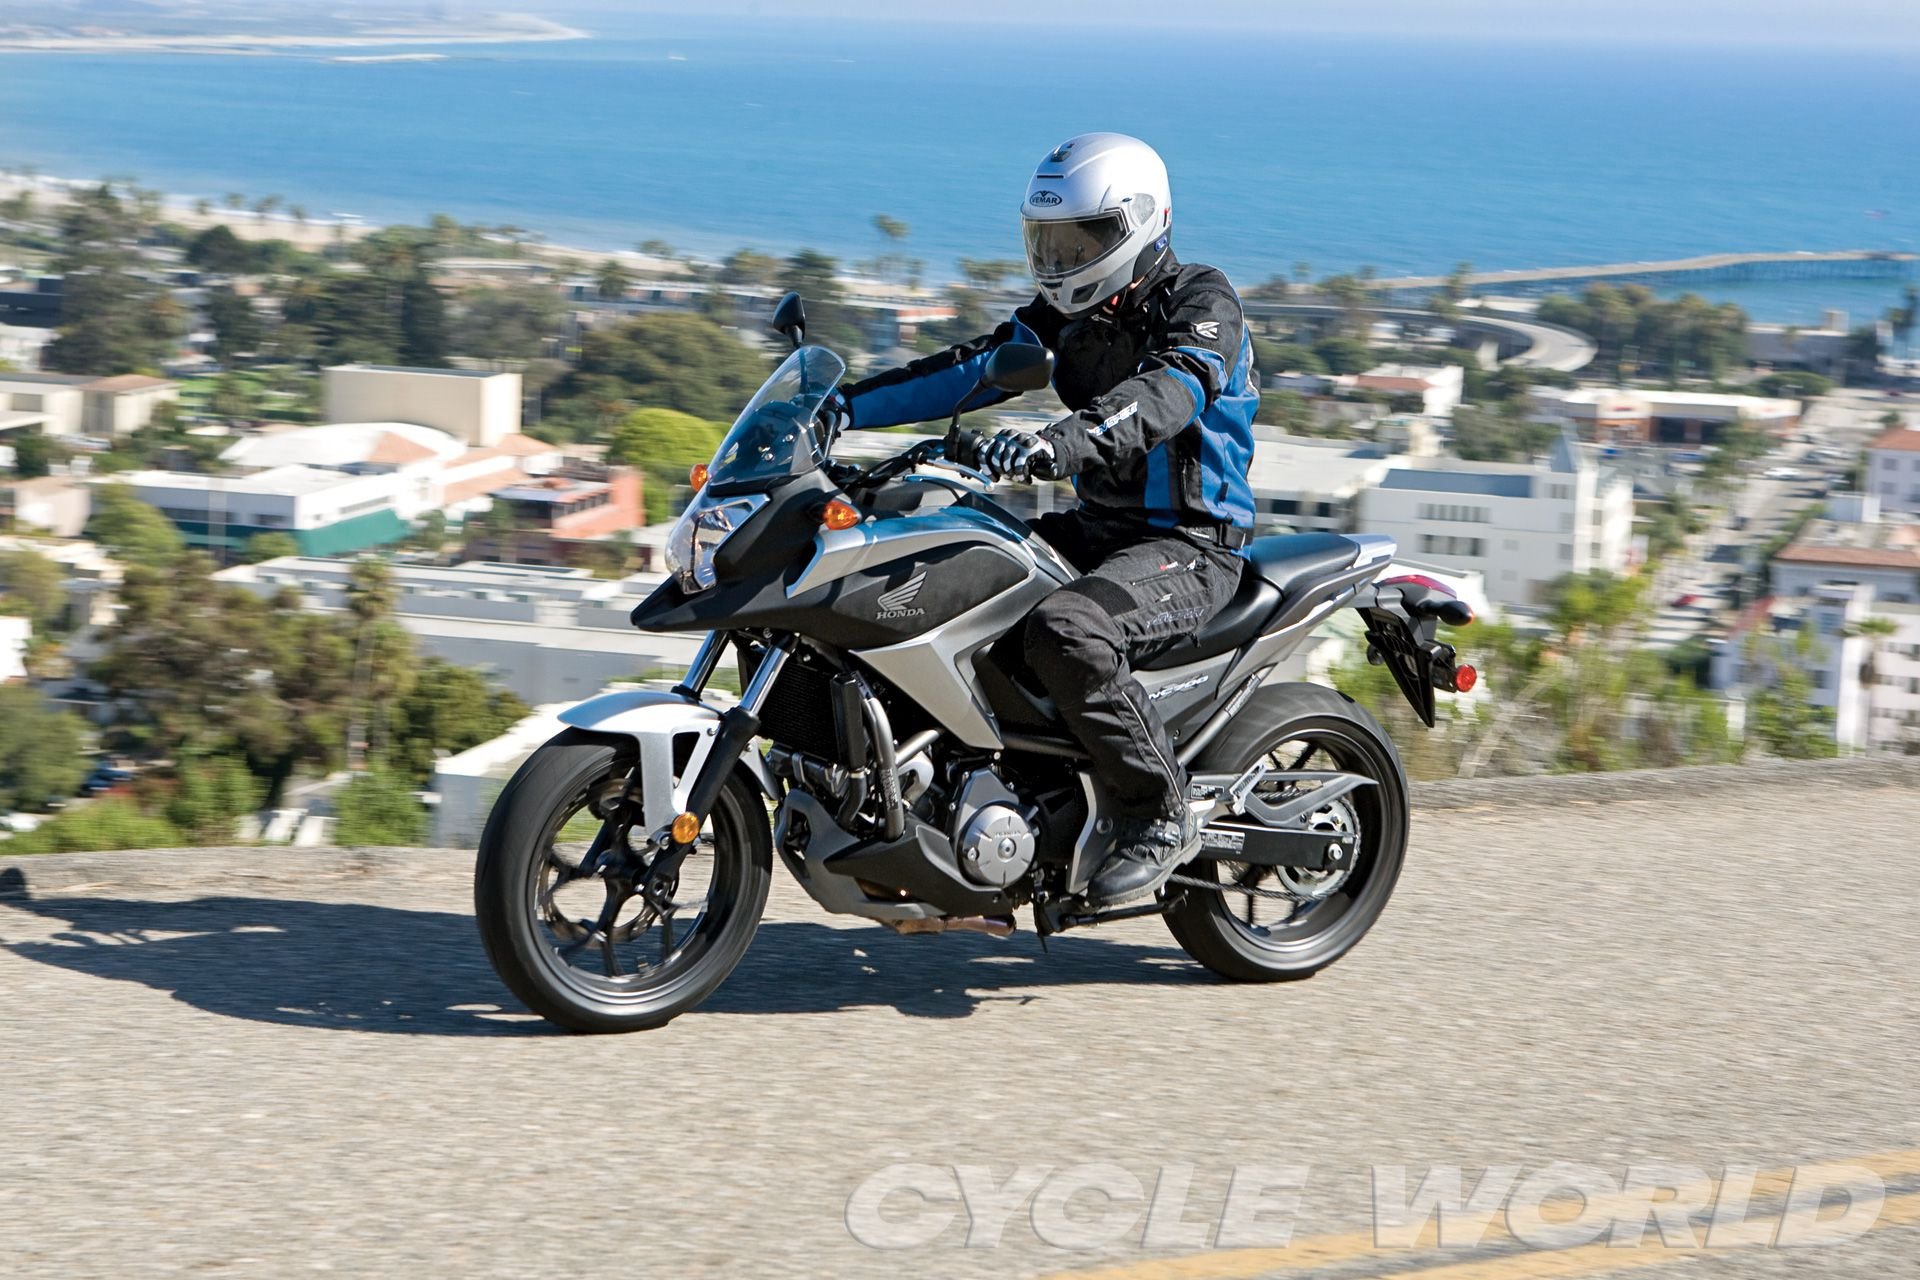 Honda NC700X Road Test Review- Specifications- Photos | Cycle World